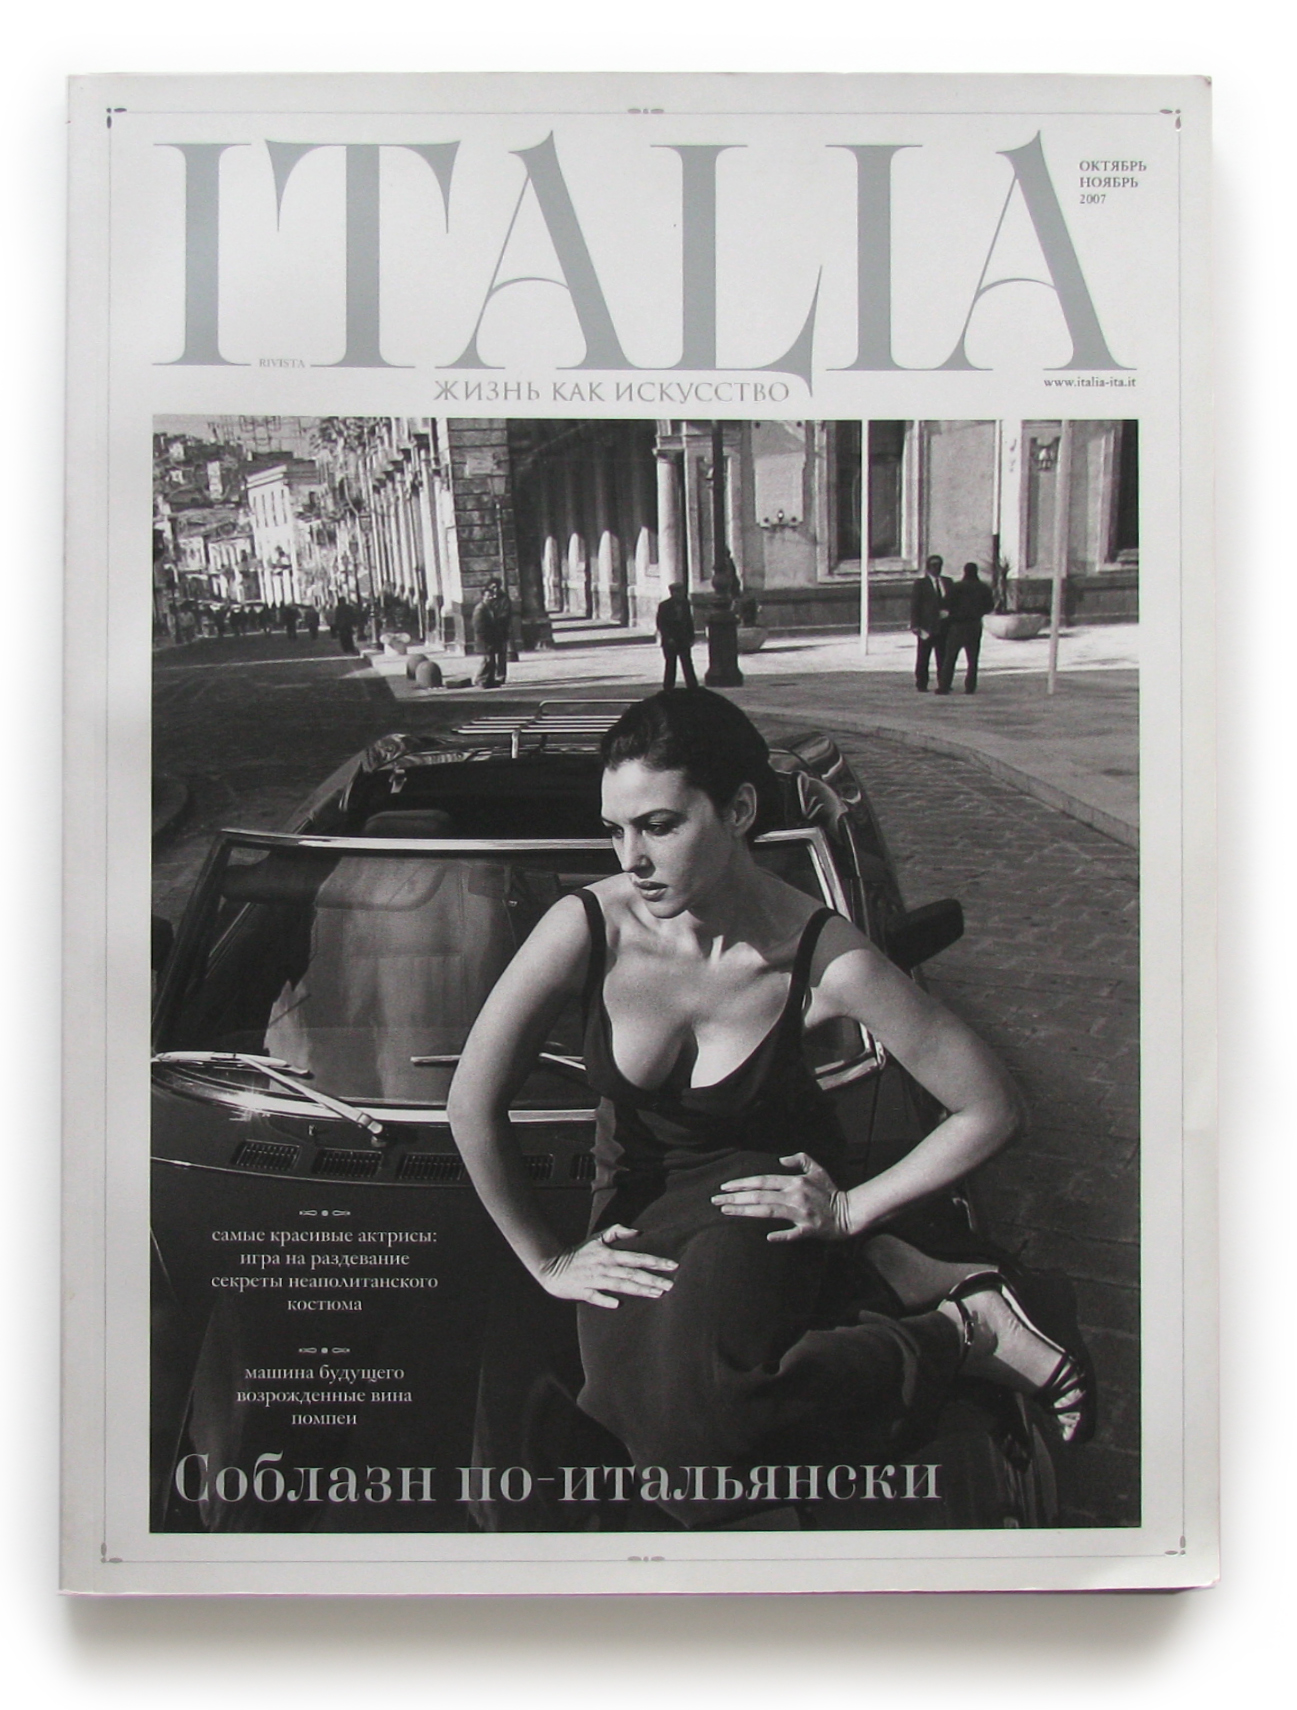 An early version of FF Carina created for Italia magazine.